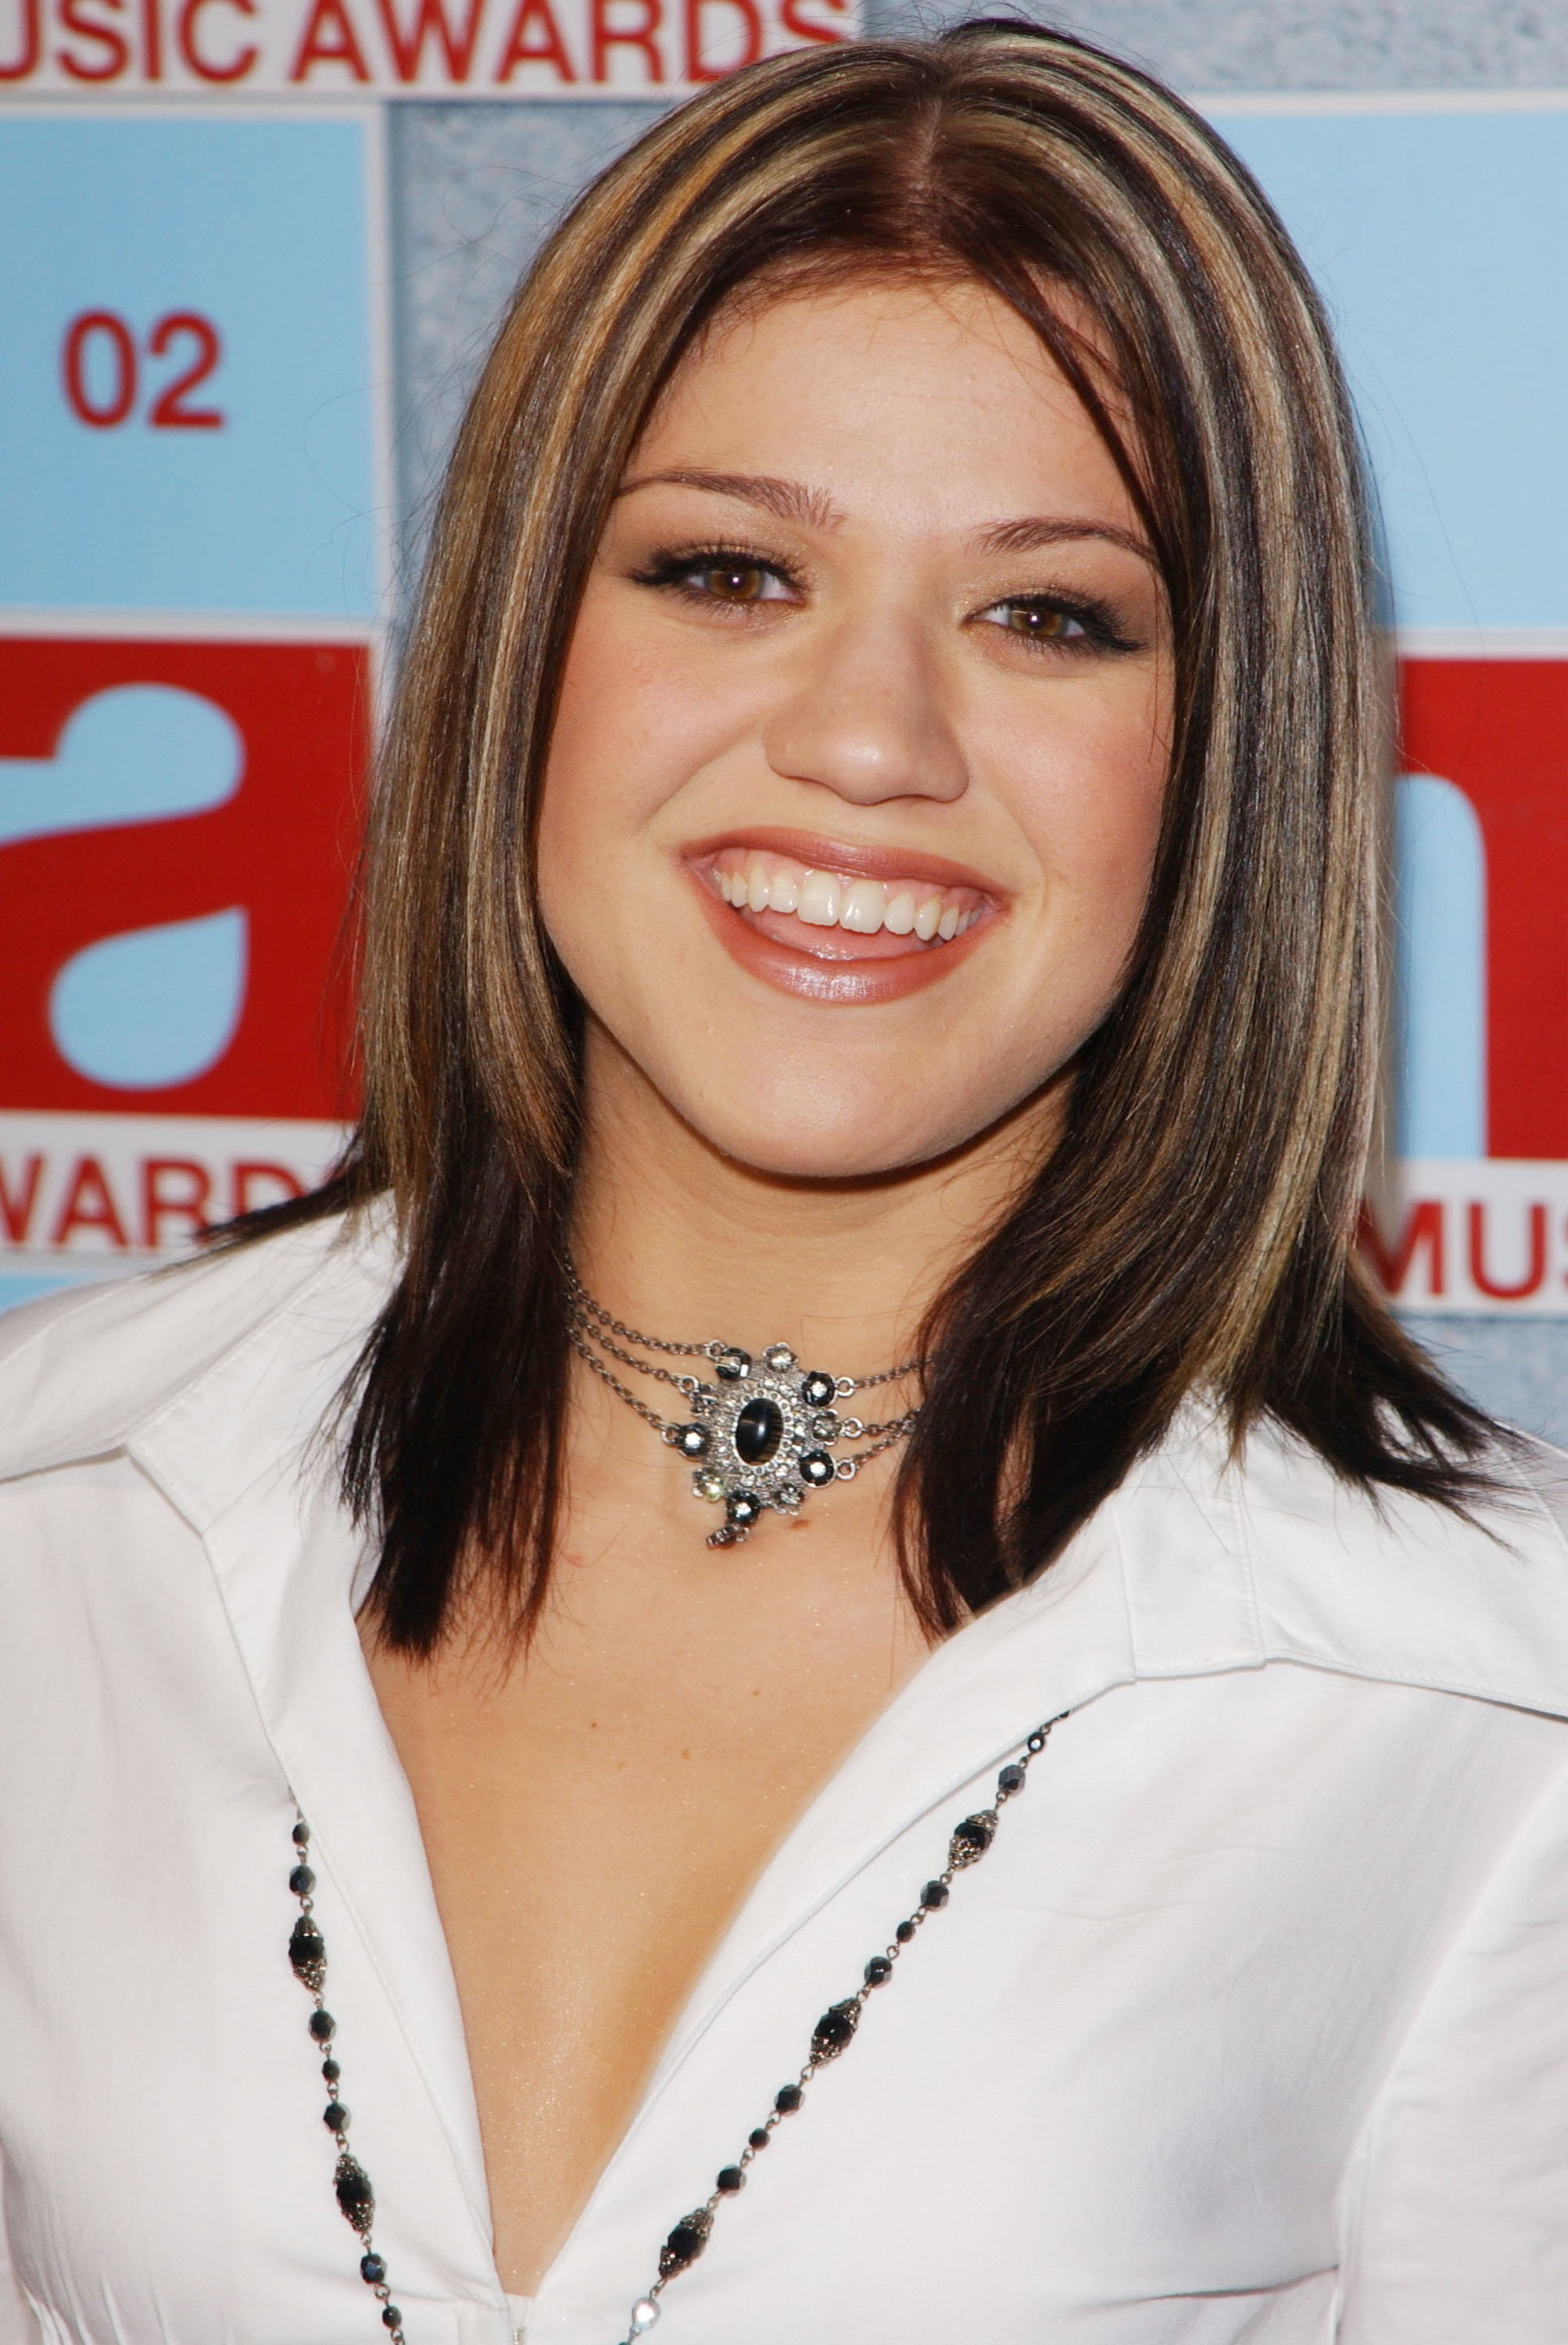 Kelly Clarkson at Radio City Music Hall August 29,2002 in New York City | Source: Getty Images